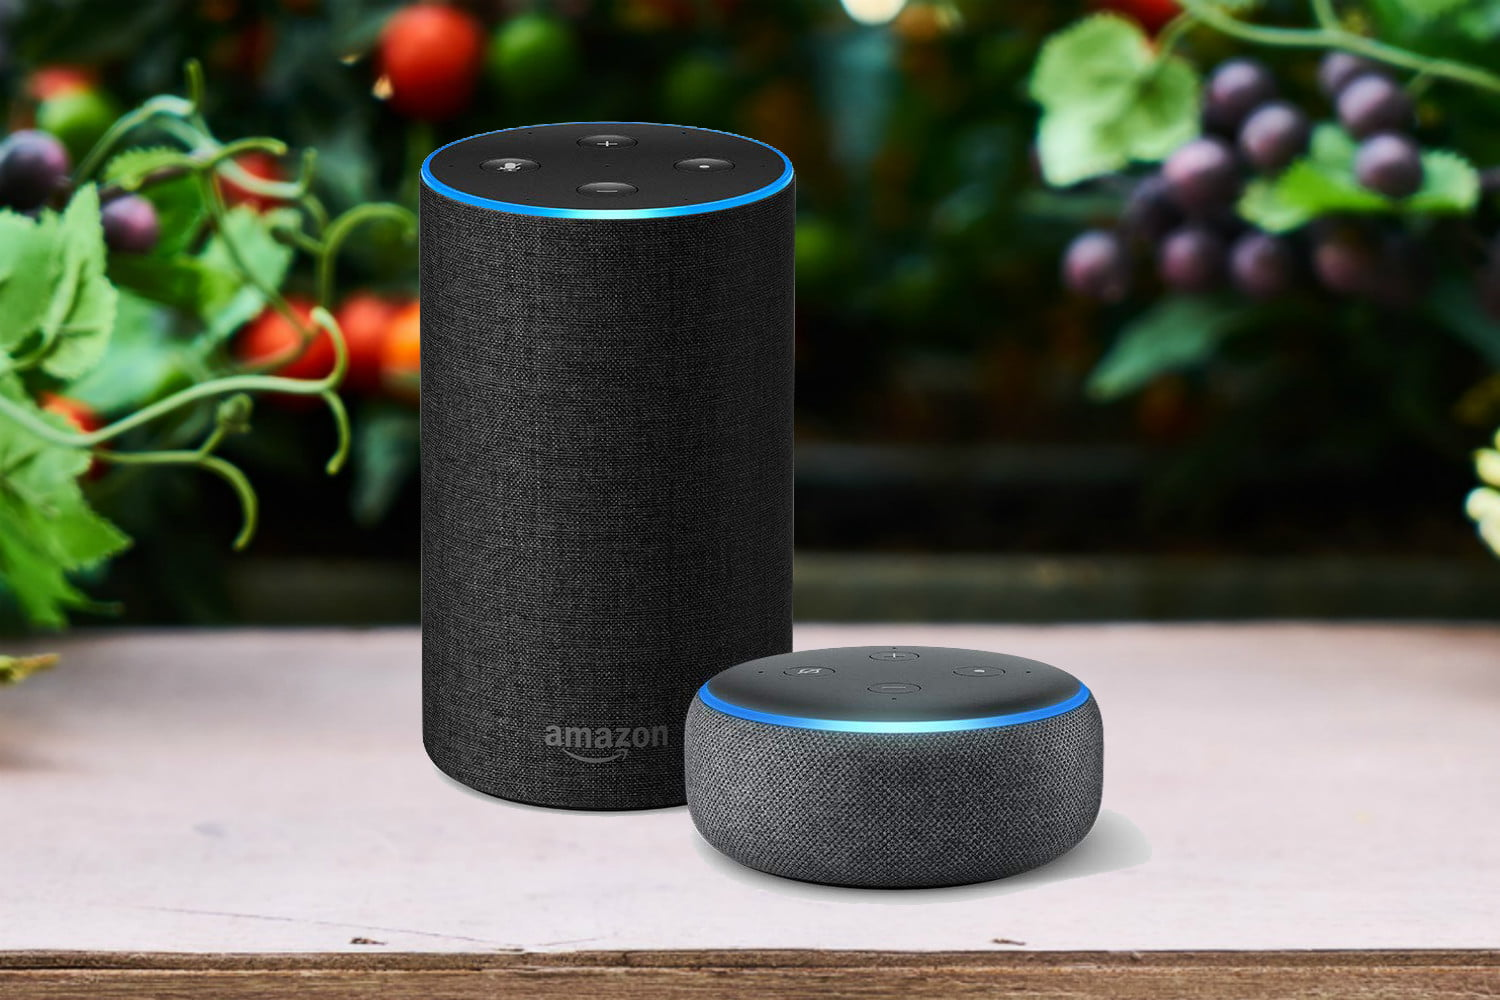 Round Amazon Echo and Echo Dot in the test